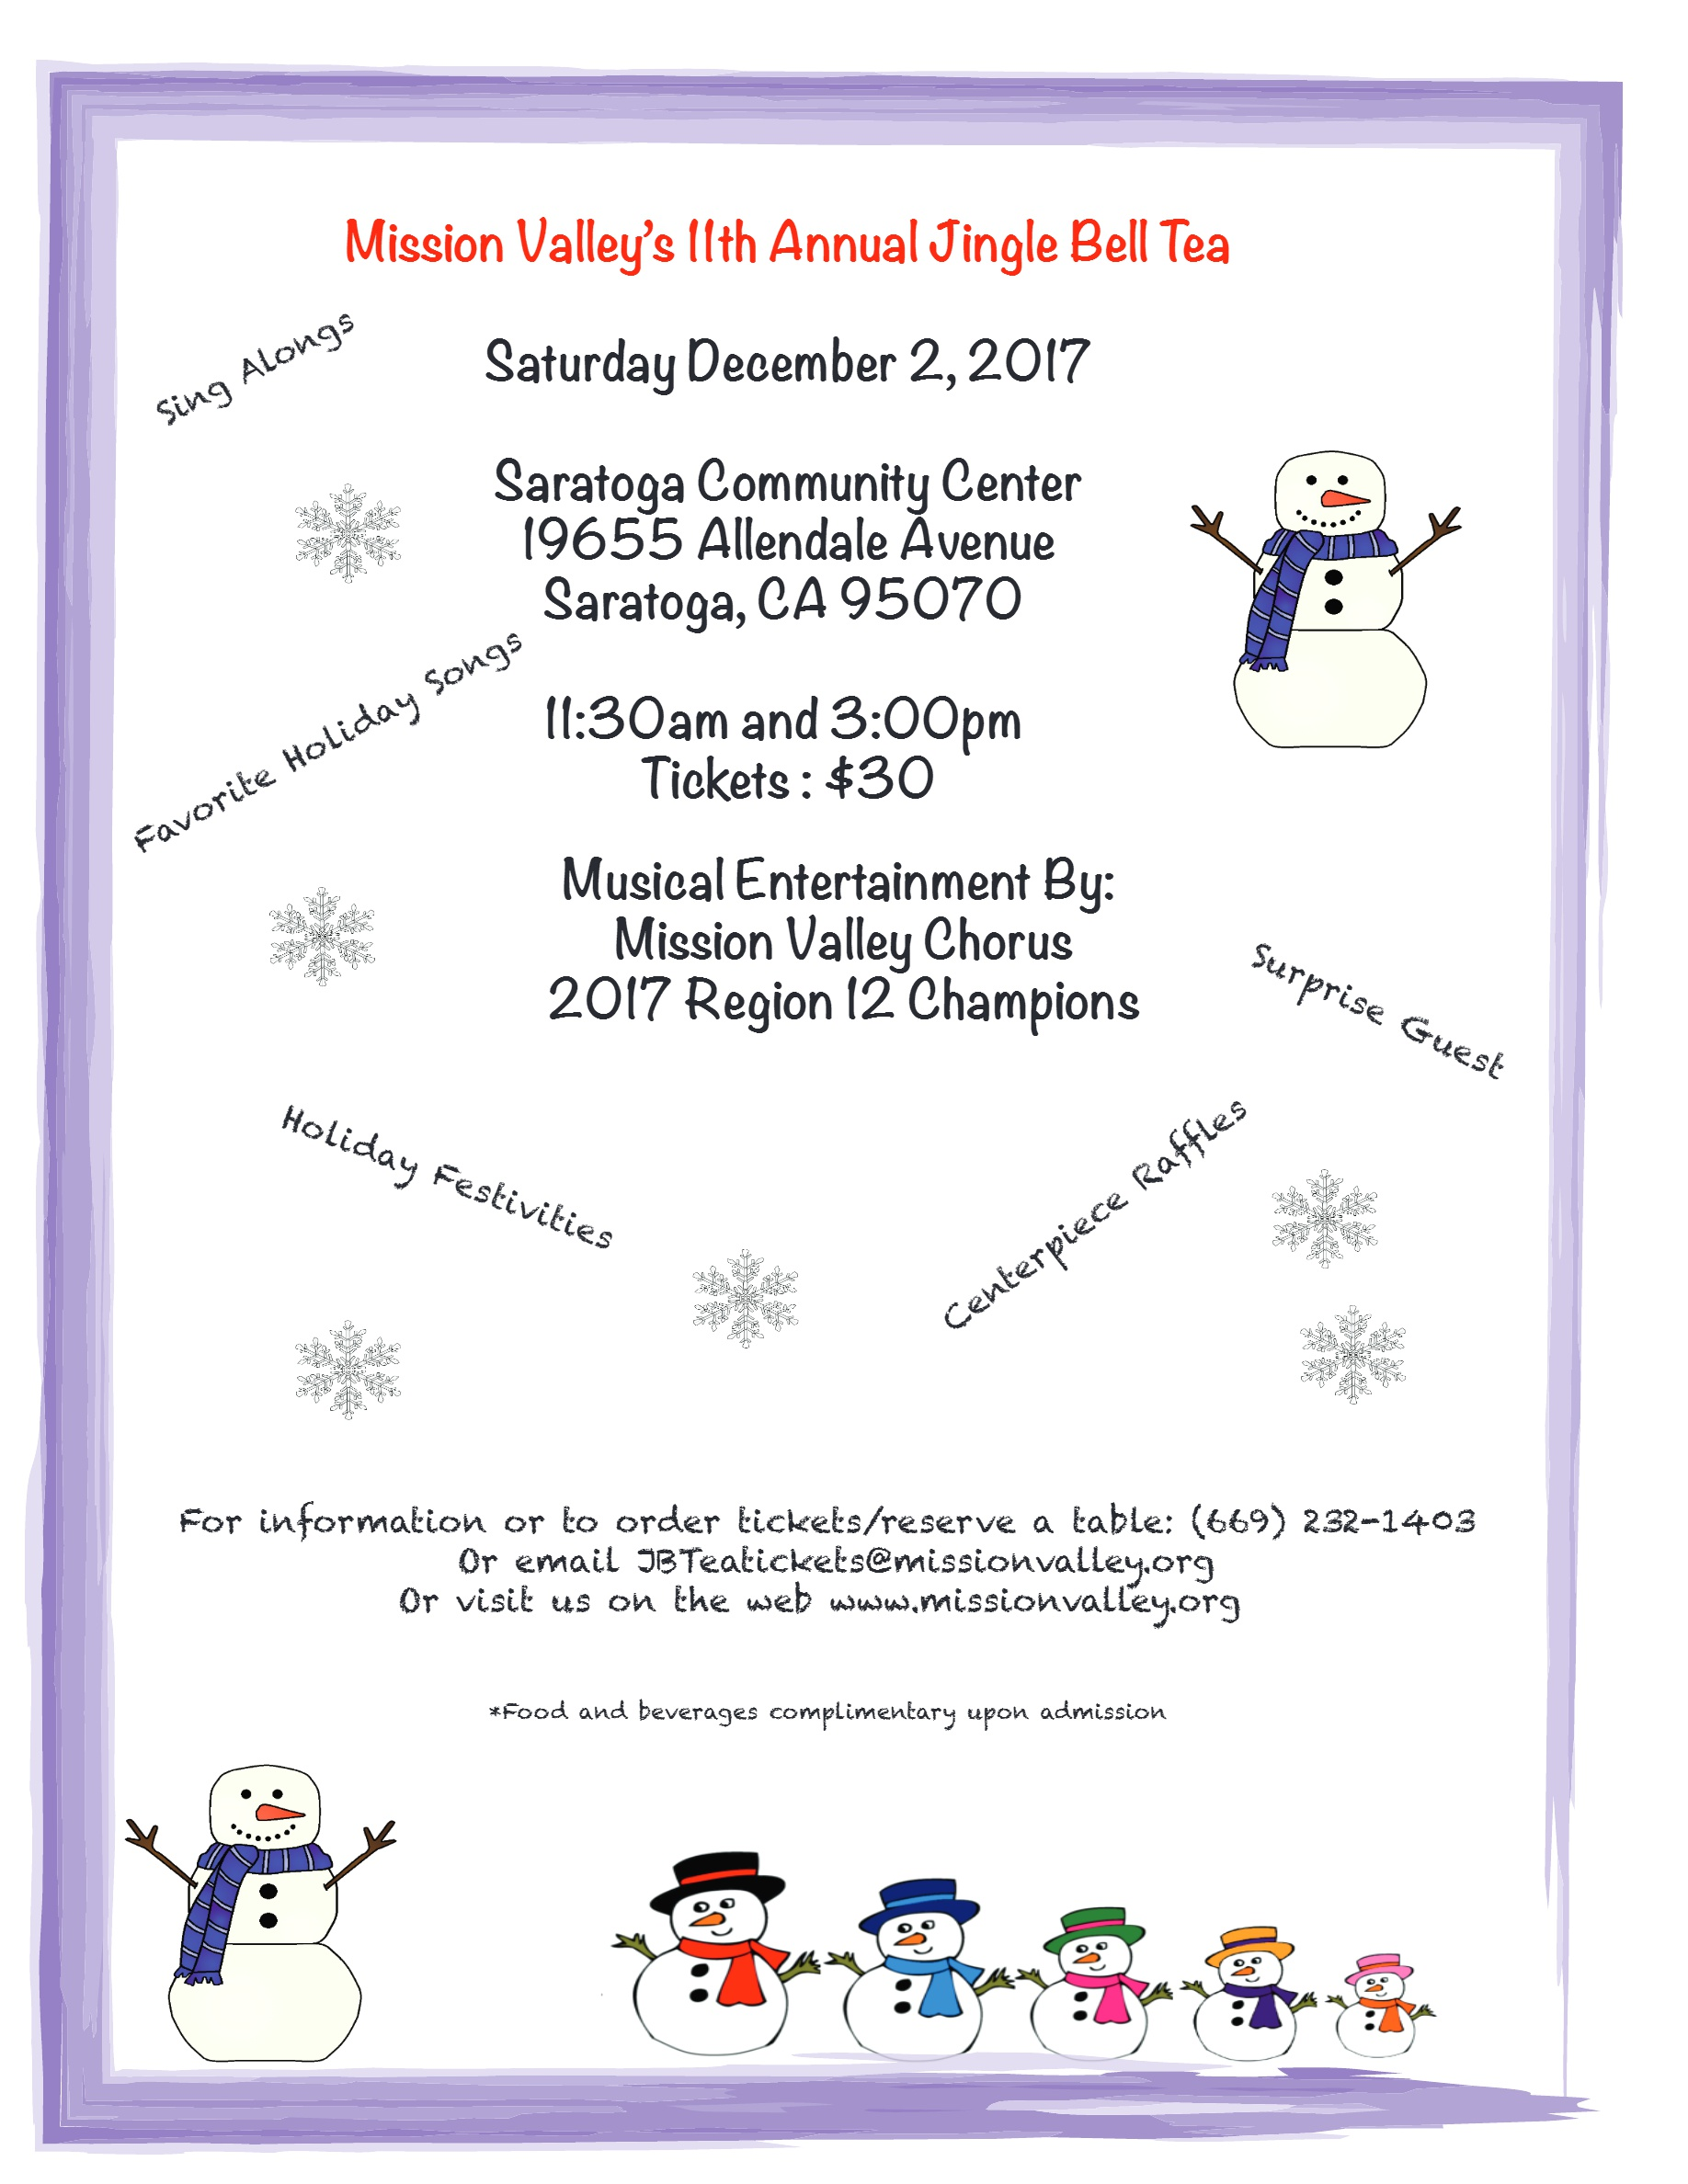 MVC Jingle Bell Tea Flyer